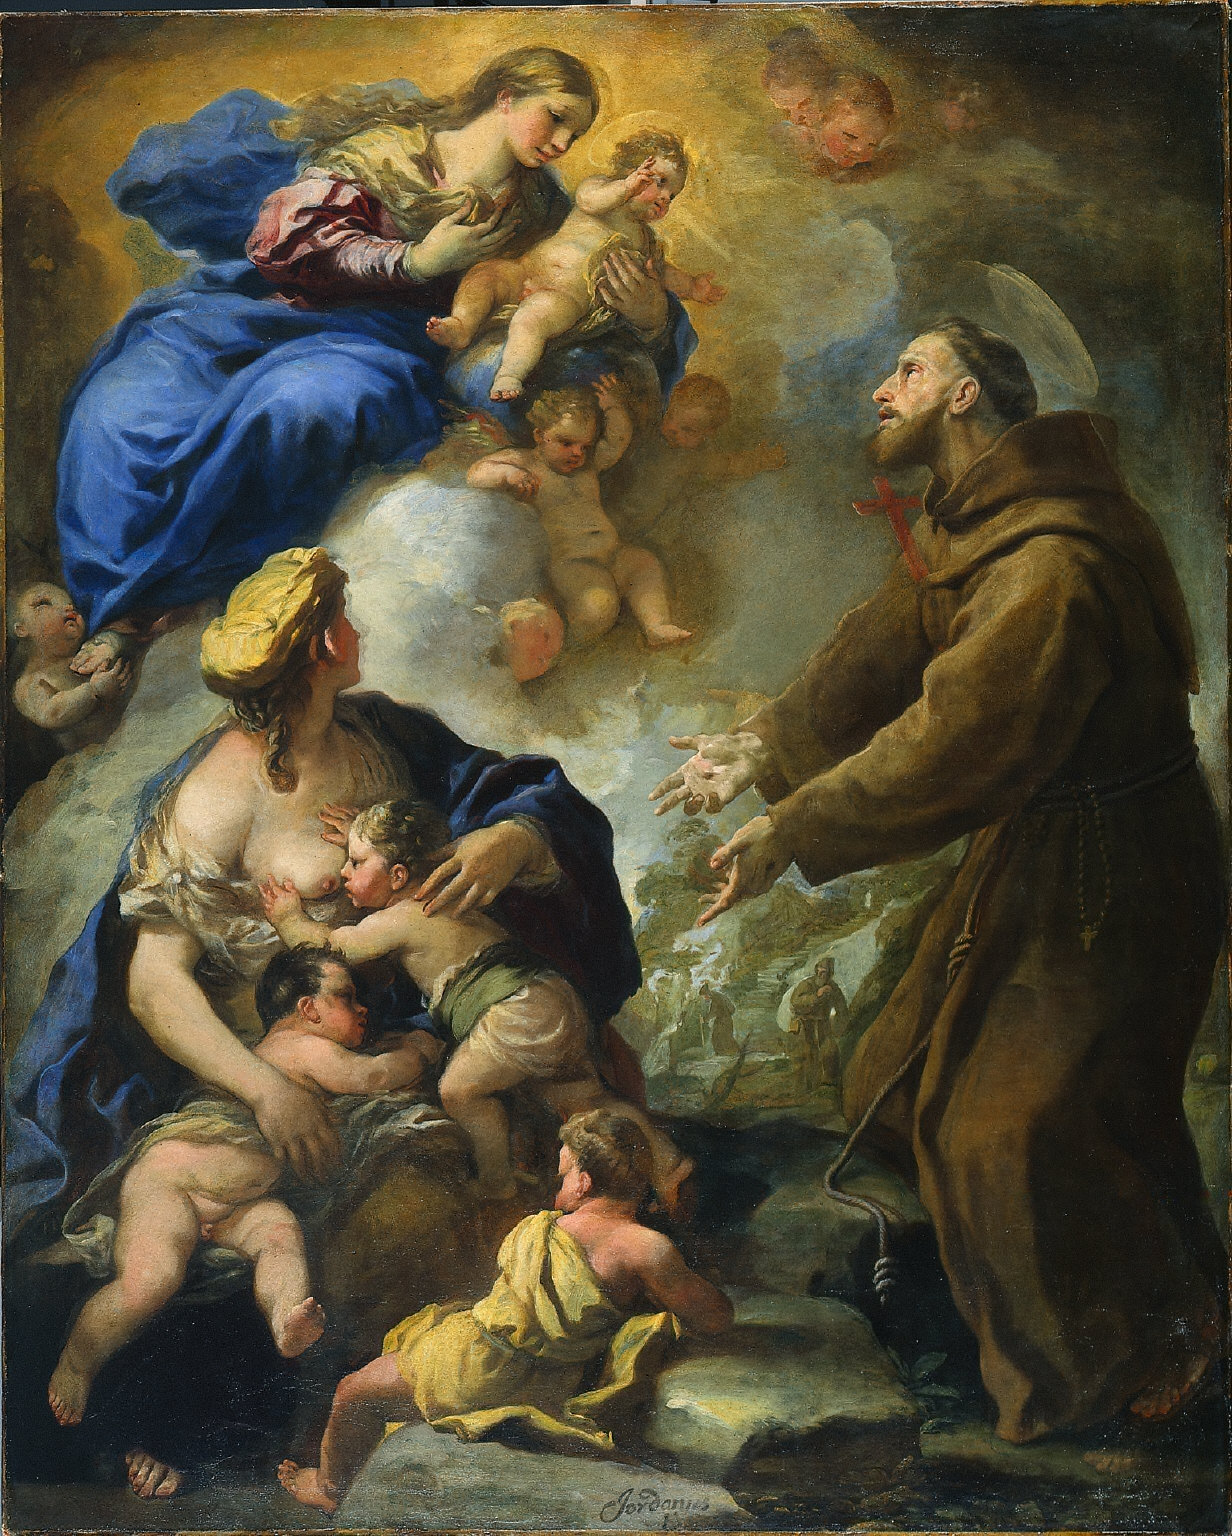 The Virgin and Child Appearing to St. Francis of Assisi